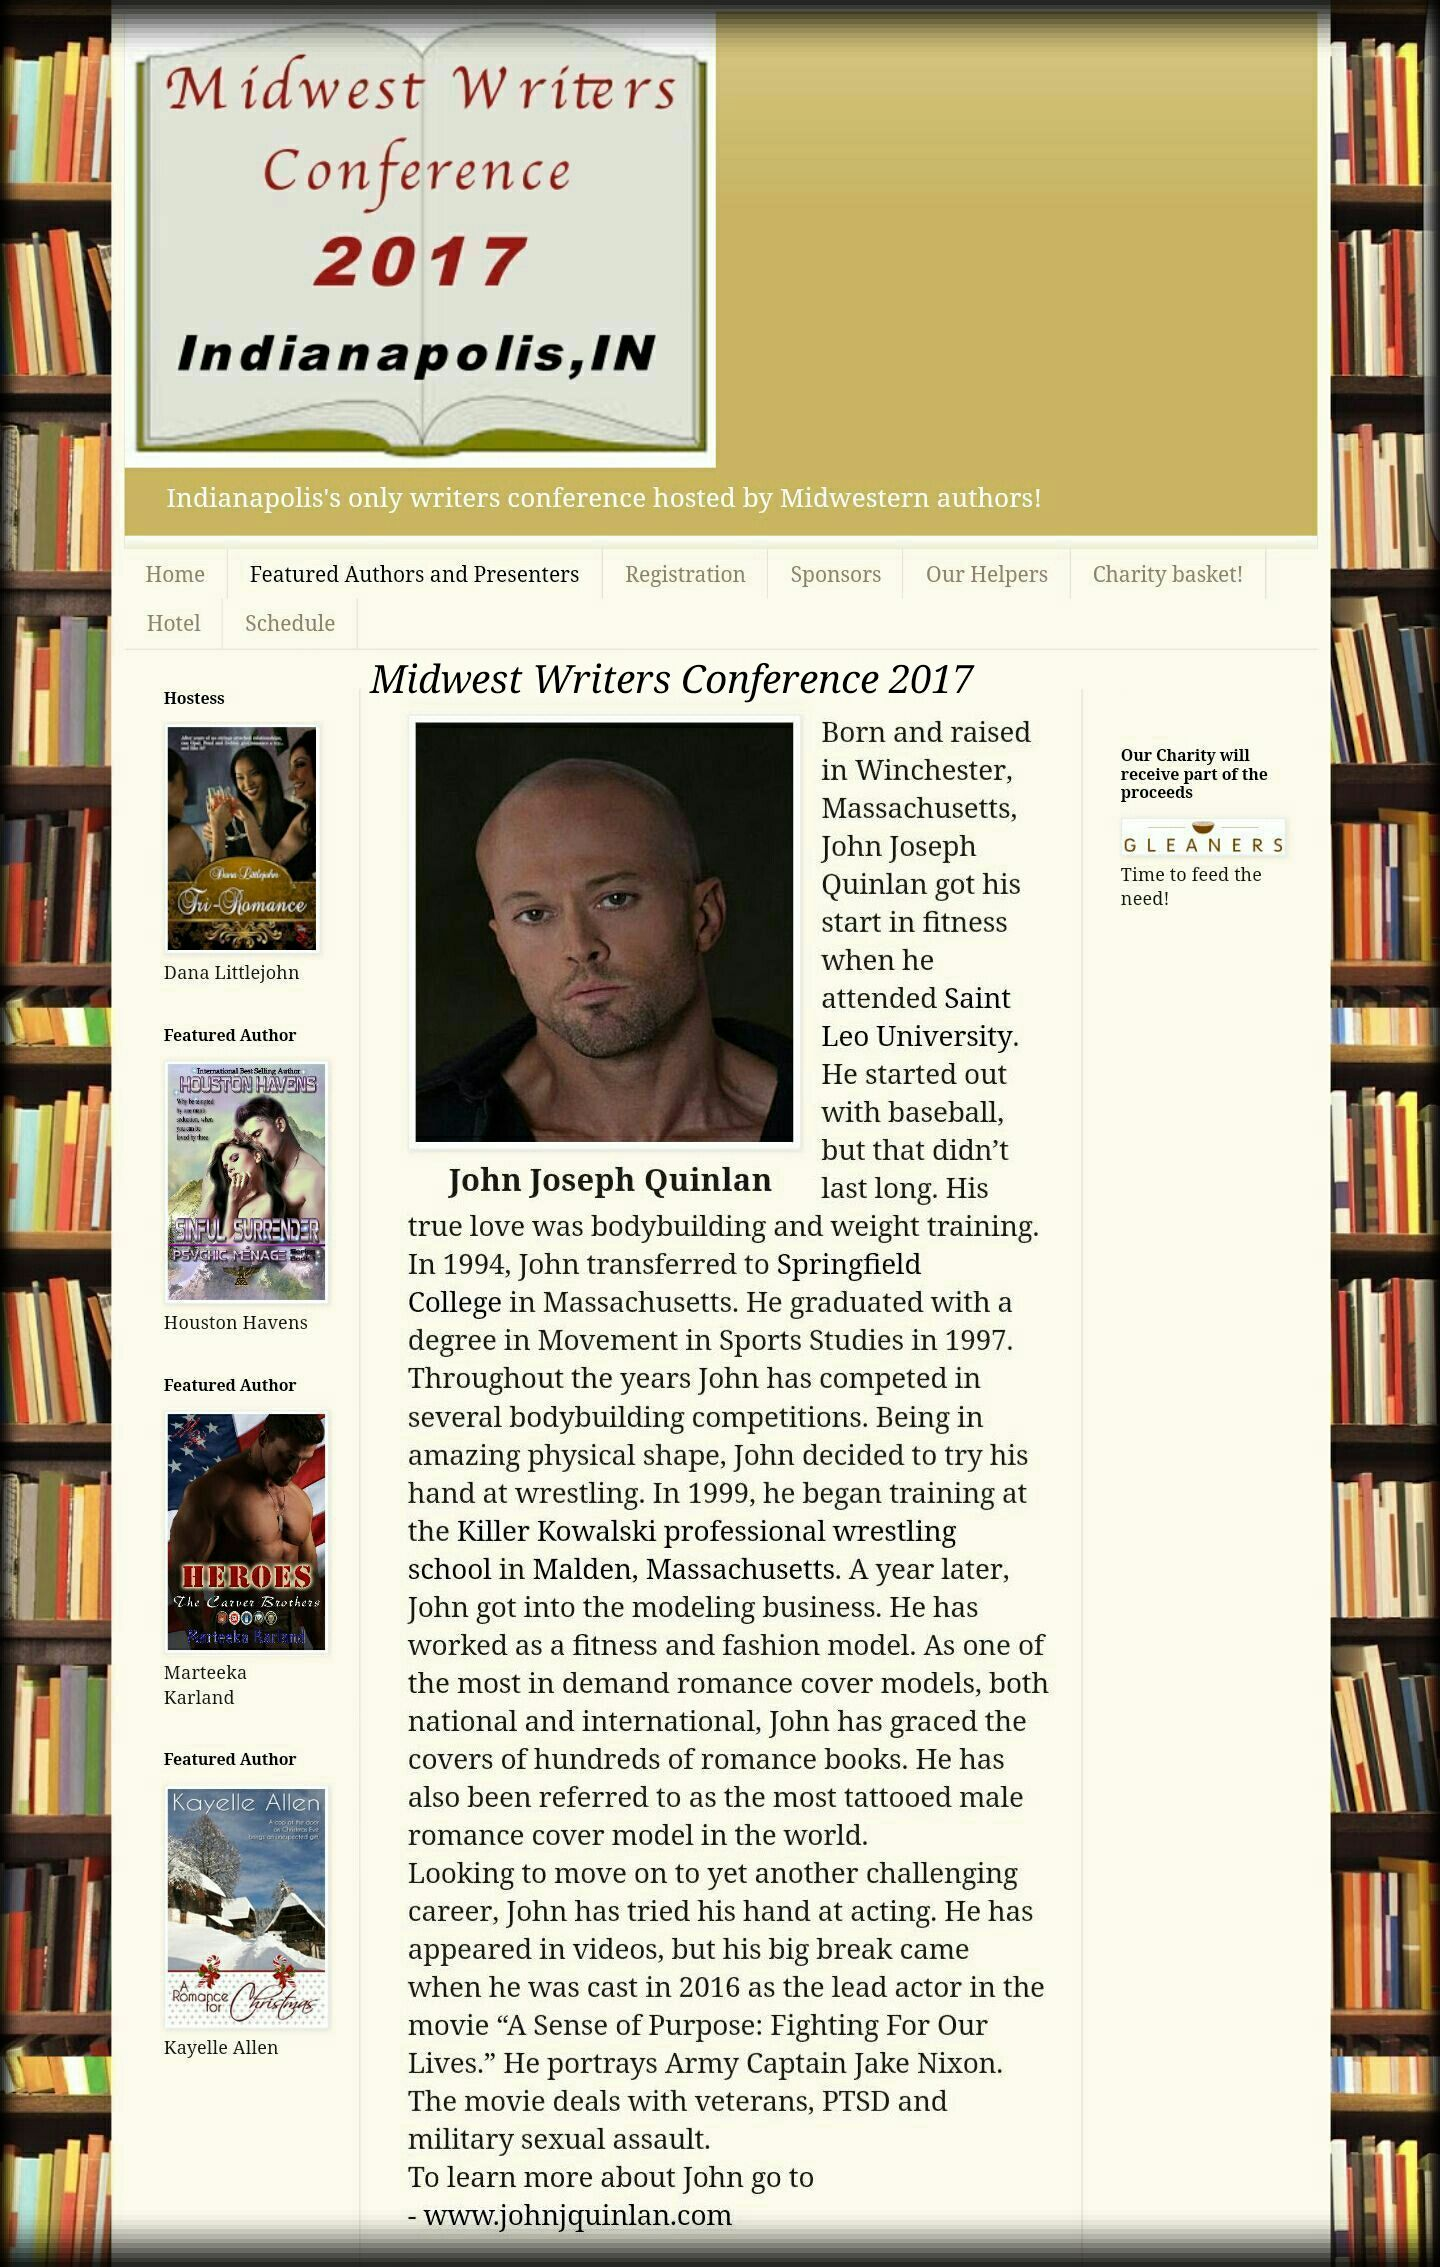 2017 Midwest Writers Conference Featured Model & Actor John Joseph Quinlan #JohnQuinlan